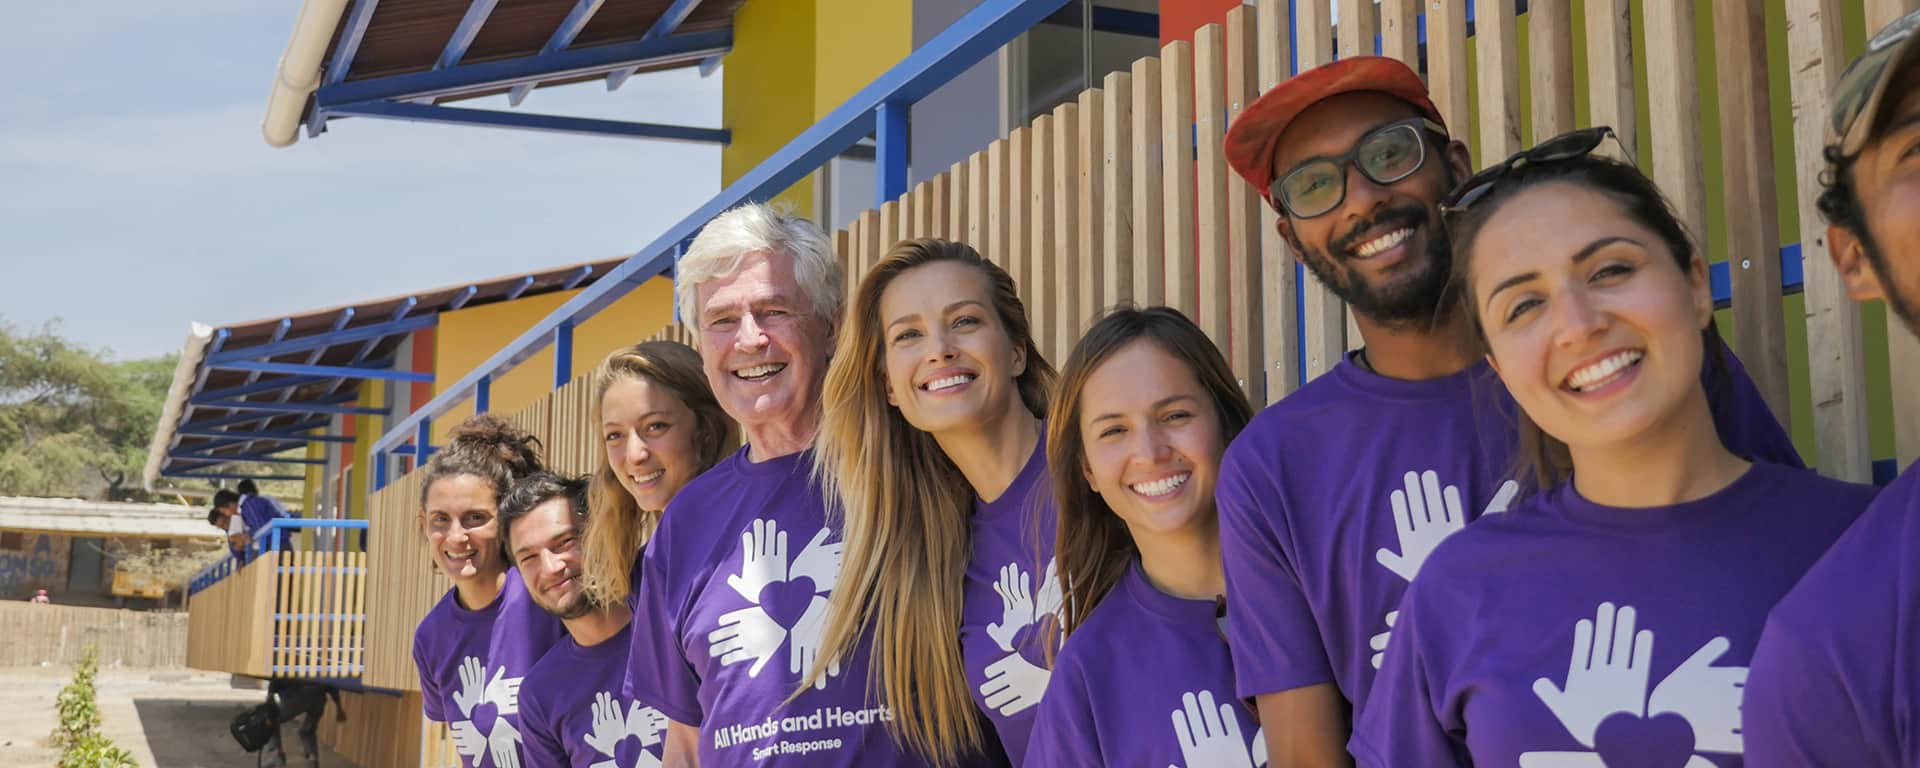 Co-Founders David Campbell and Petra Nemcova n Peru with volunteers